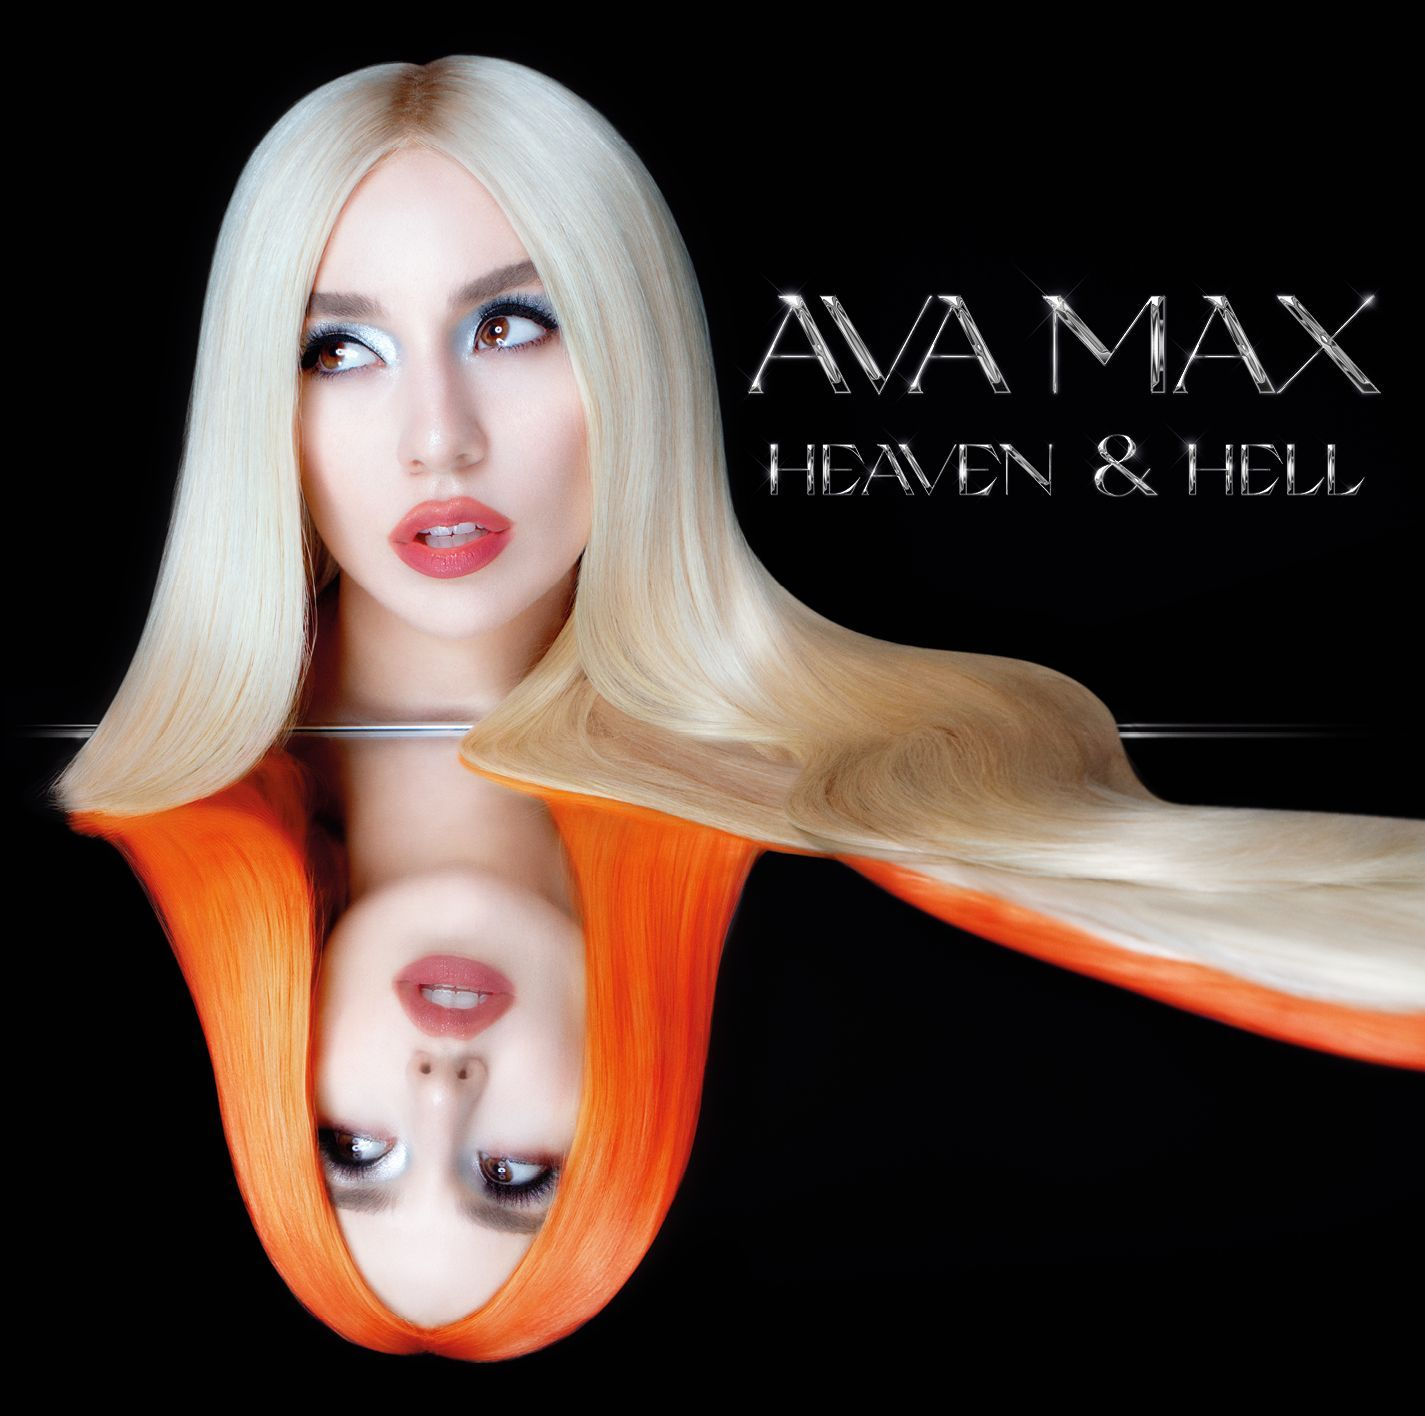 AVA MAX RELEASES HIGHLY-ANTICIPATED DEBUT ALBUM HEAVEN & HELL